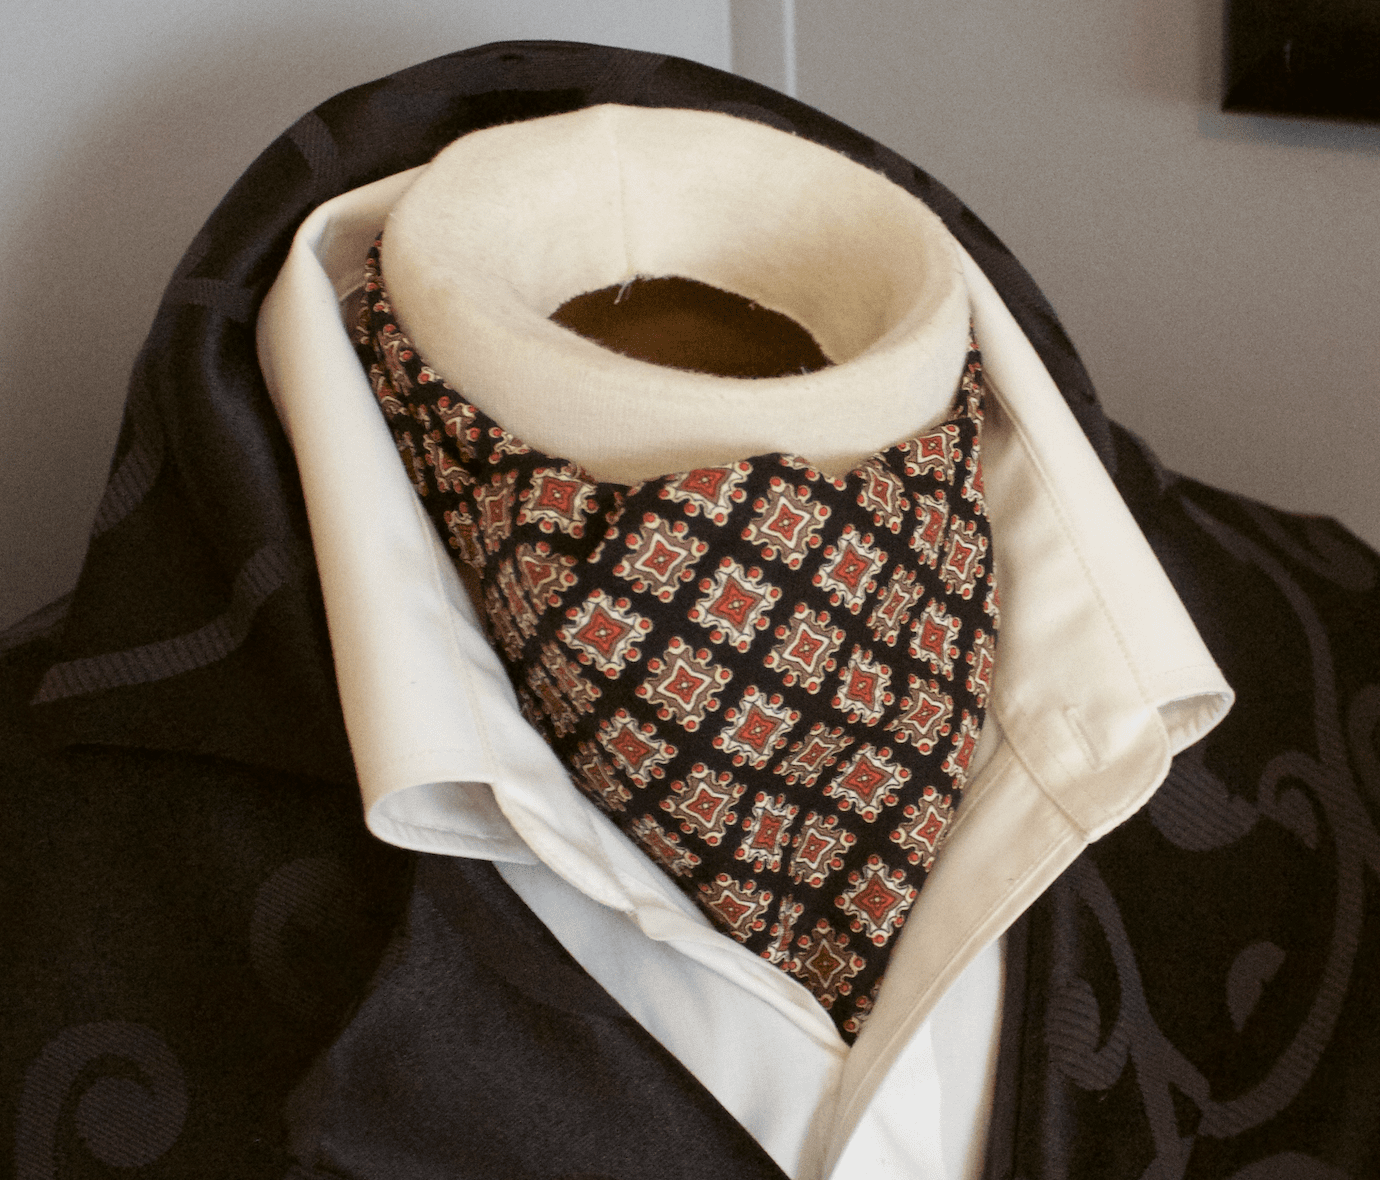 Day Ascot Cravat Tie - 100% Cotton Black background with Shades of gold and brown